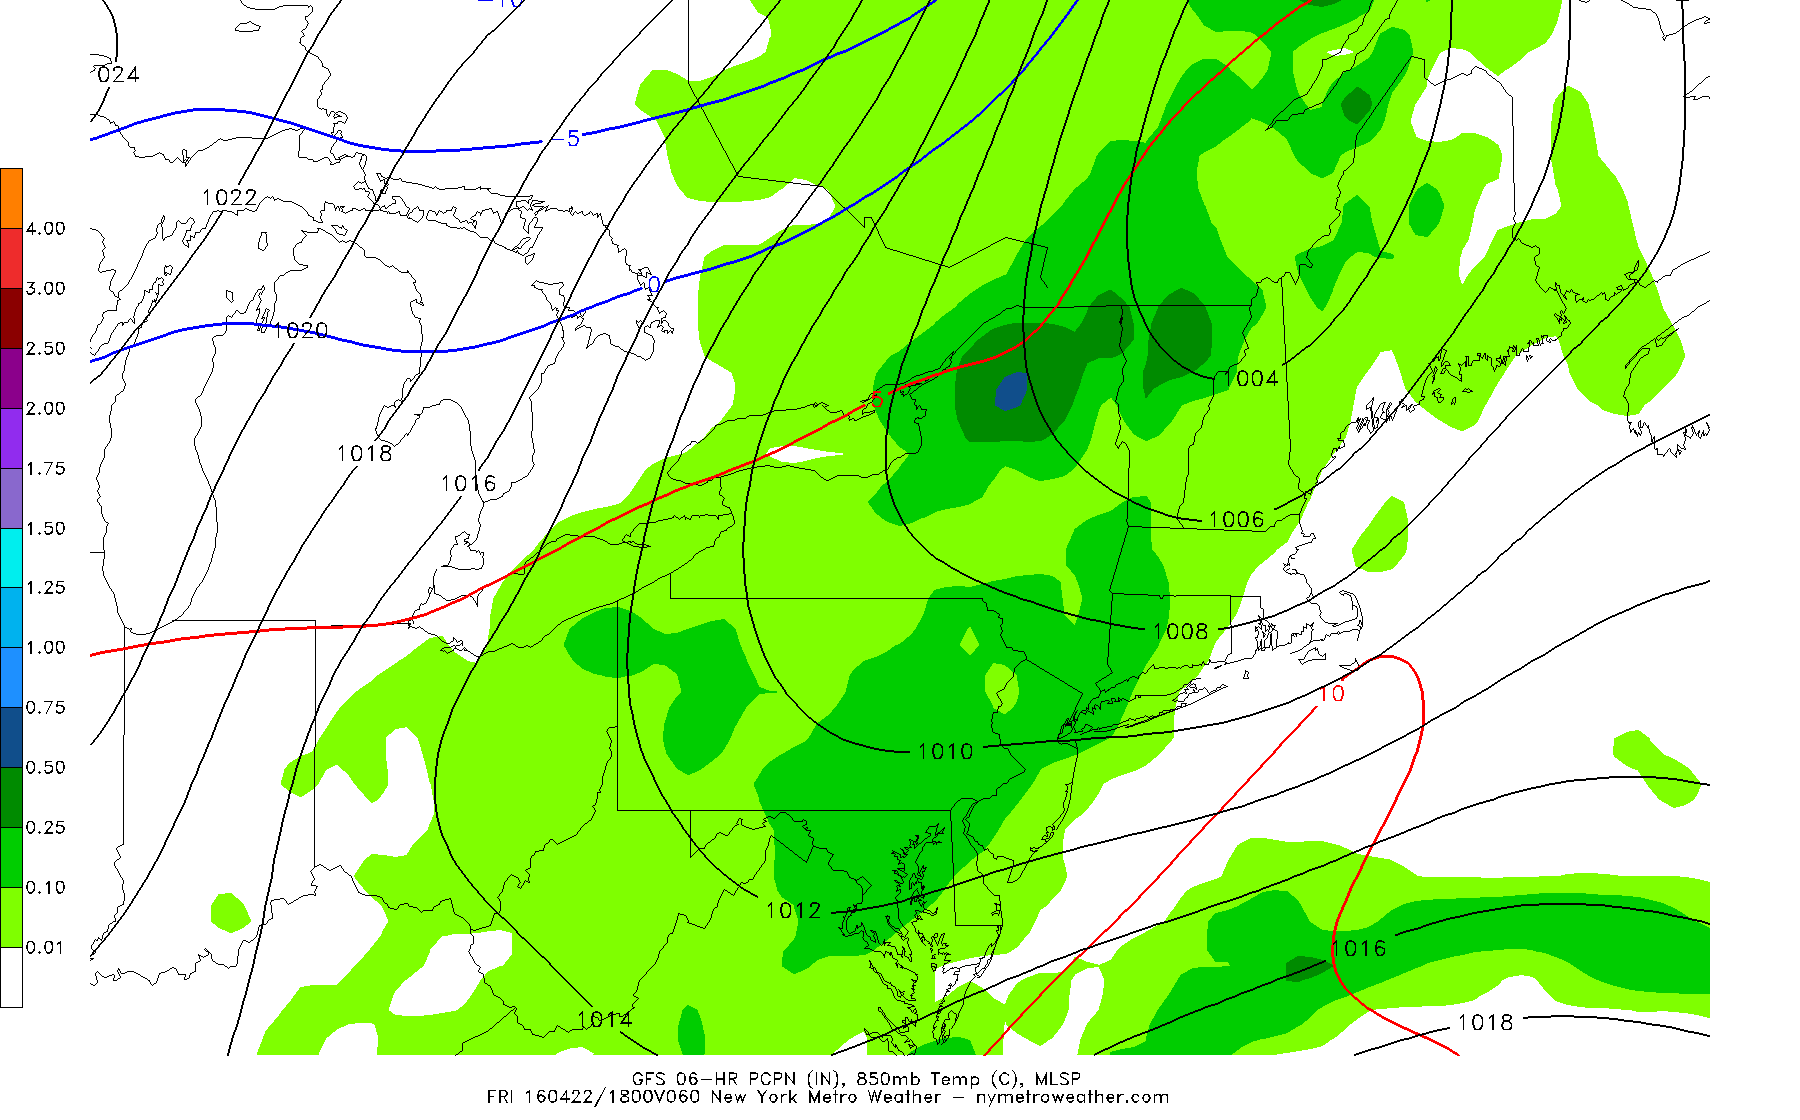 The 6z GFS showing cold front trigger showers across much of the region by Friday afternoon.